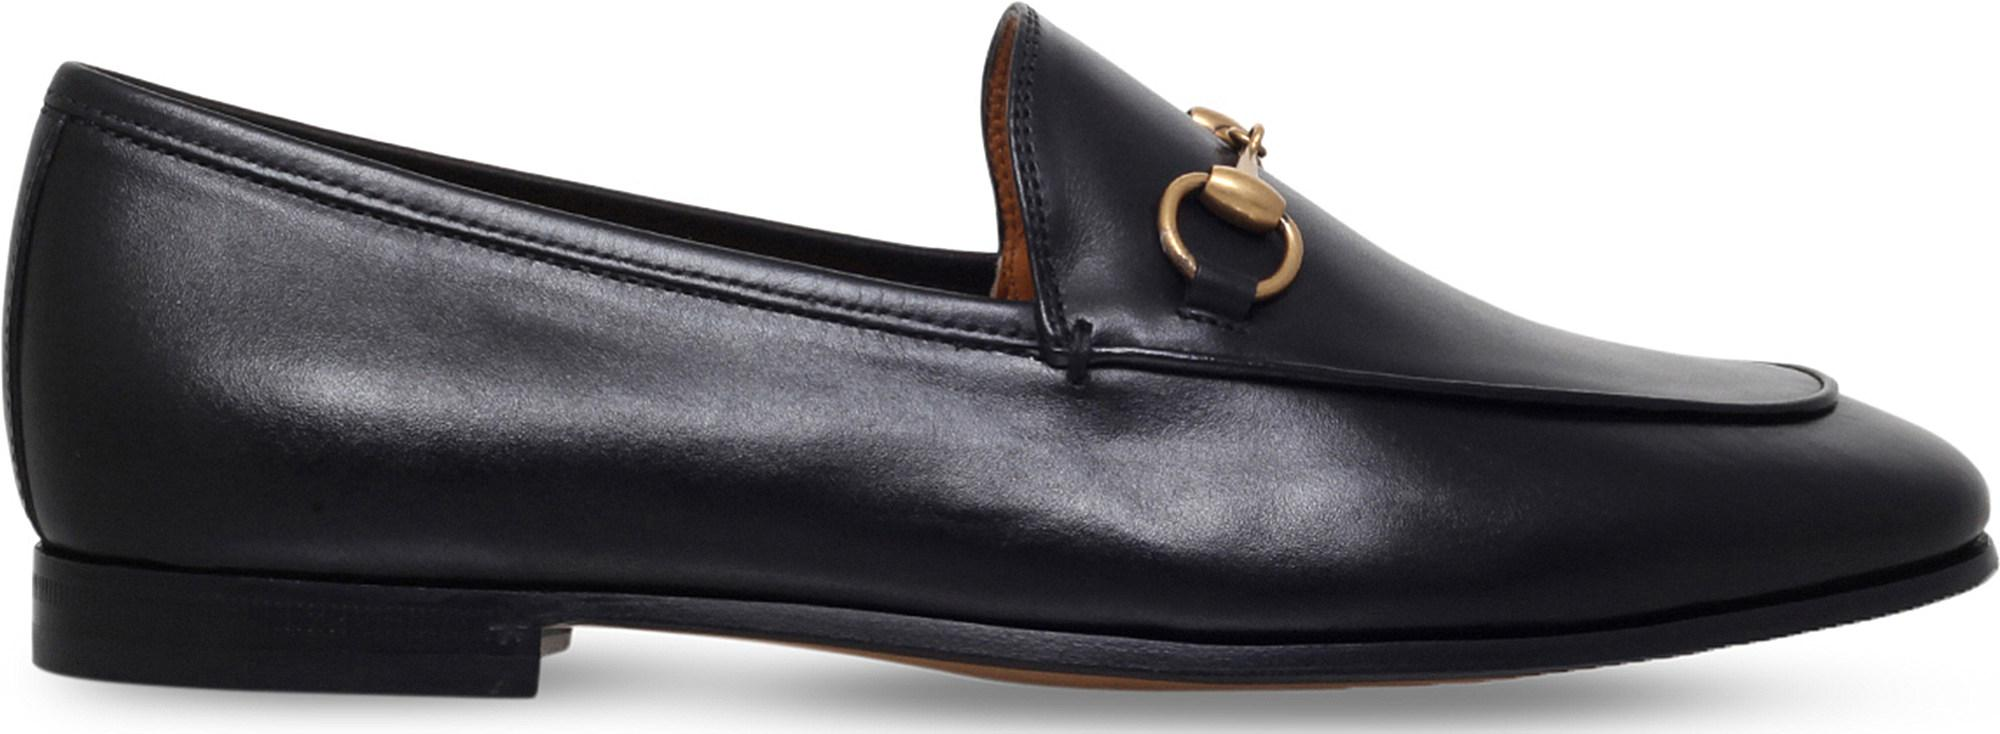 3eb09c8b711 Gucci Jordaan Leather Loafers in Black - Lyst